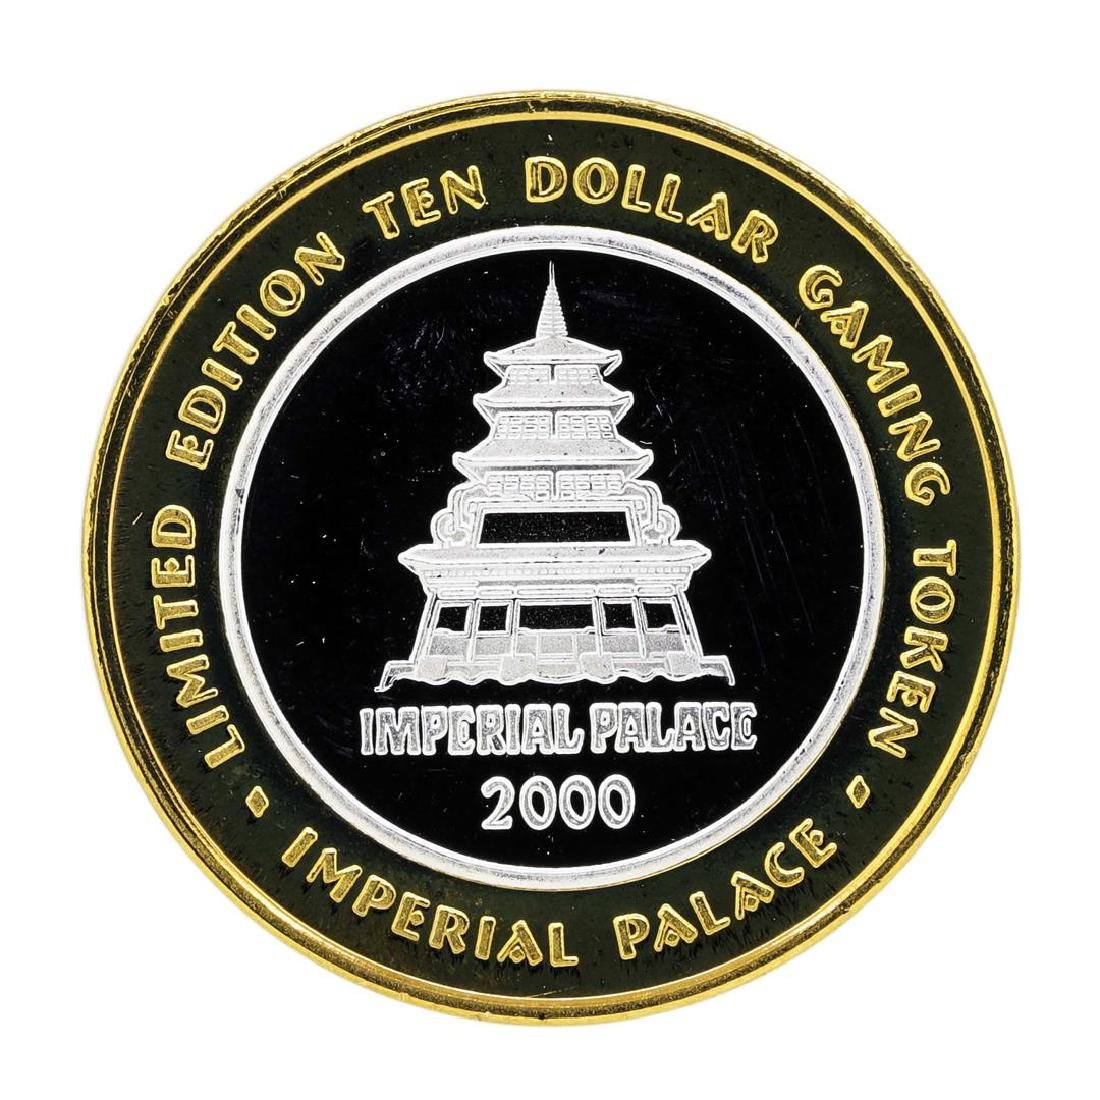 .999 Silver Imperial Palace Hotel & Casino Nevada $10 - 2